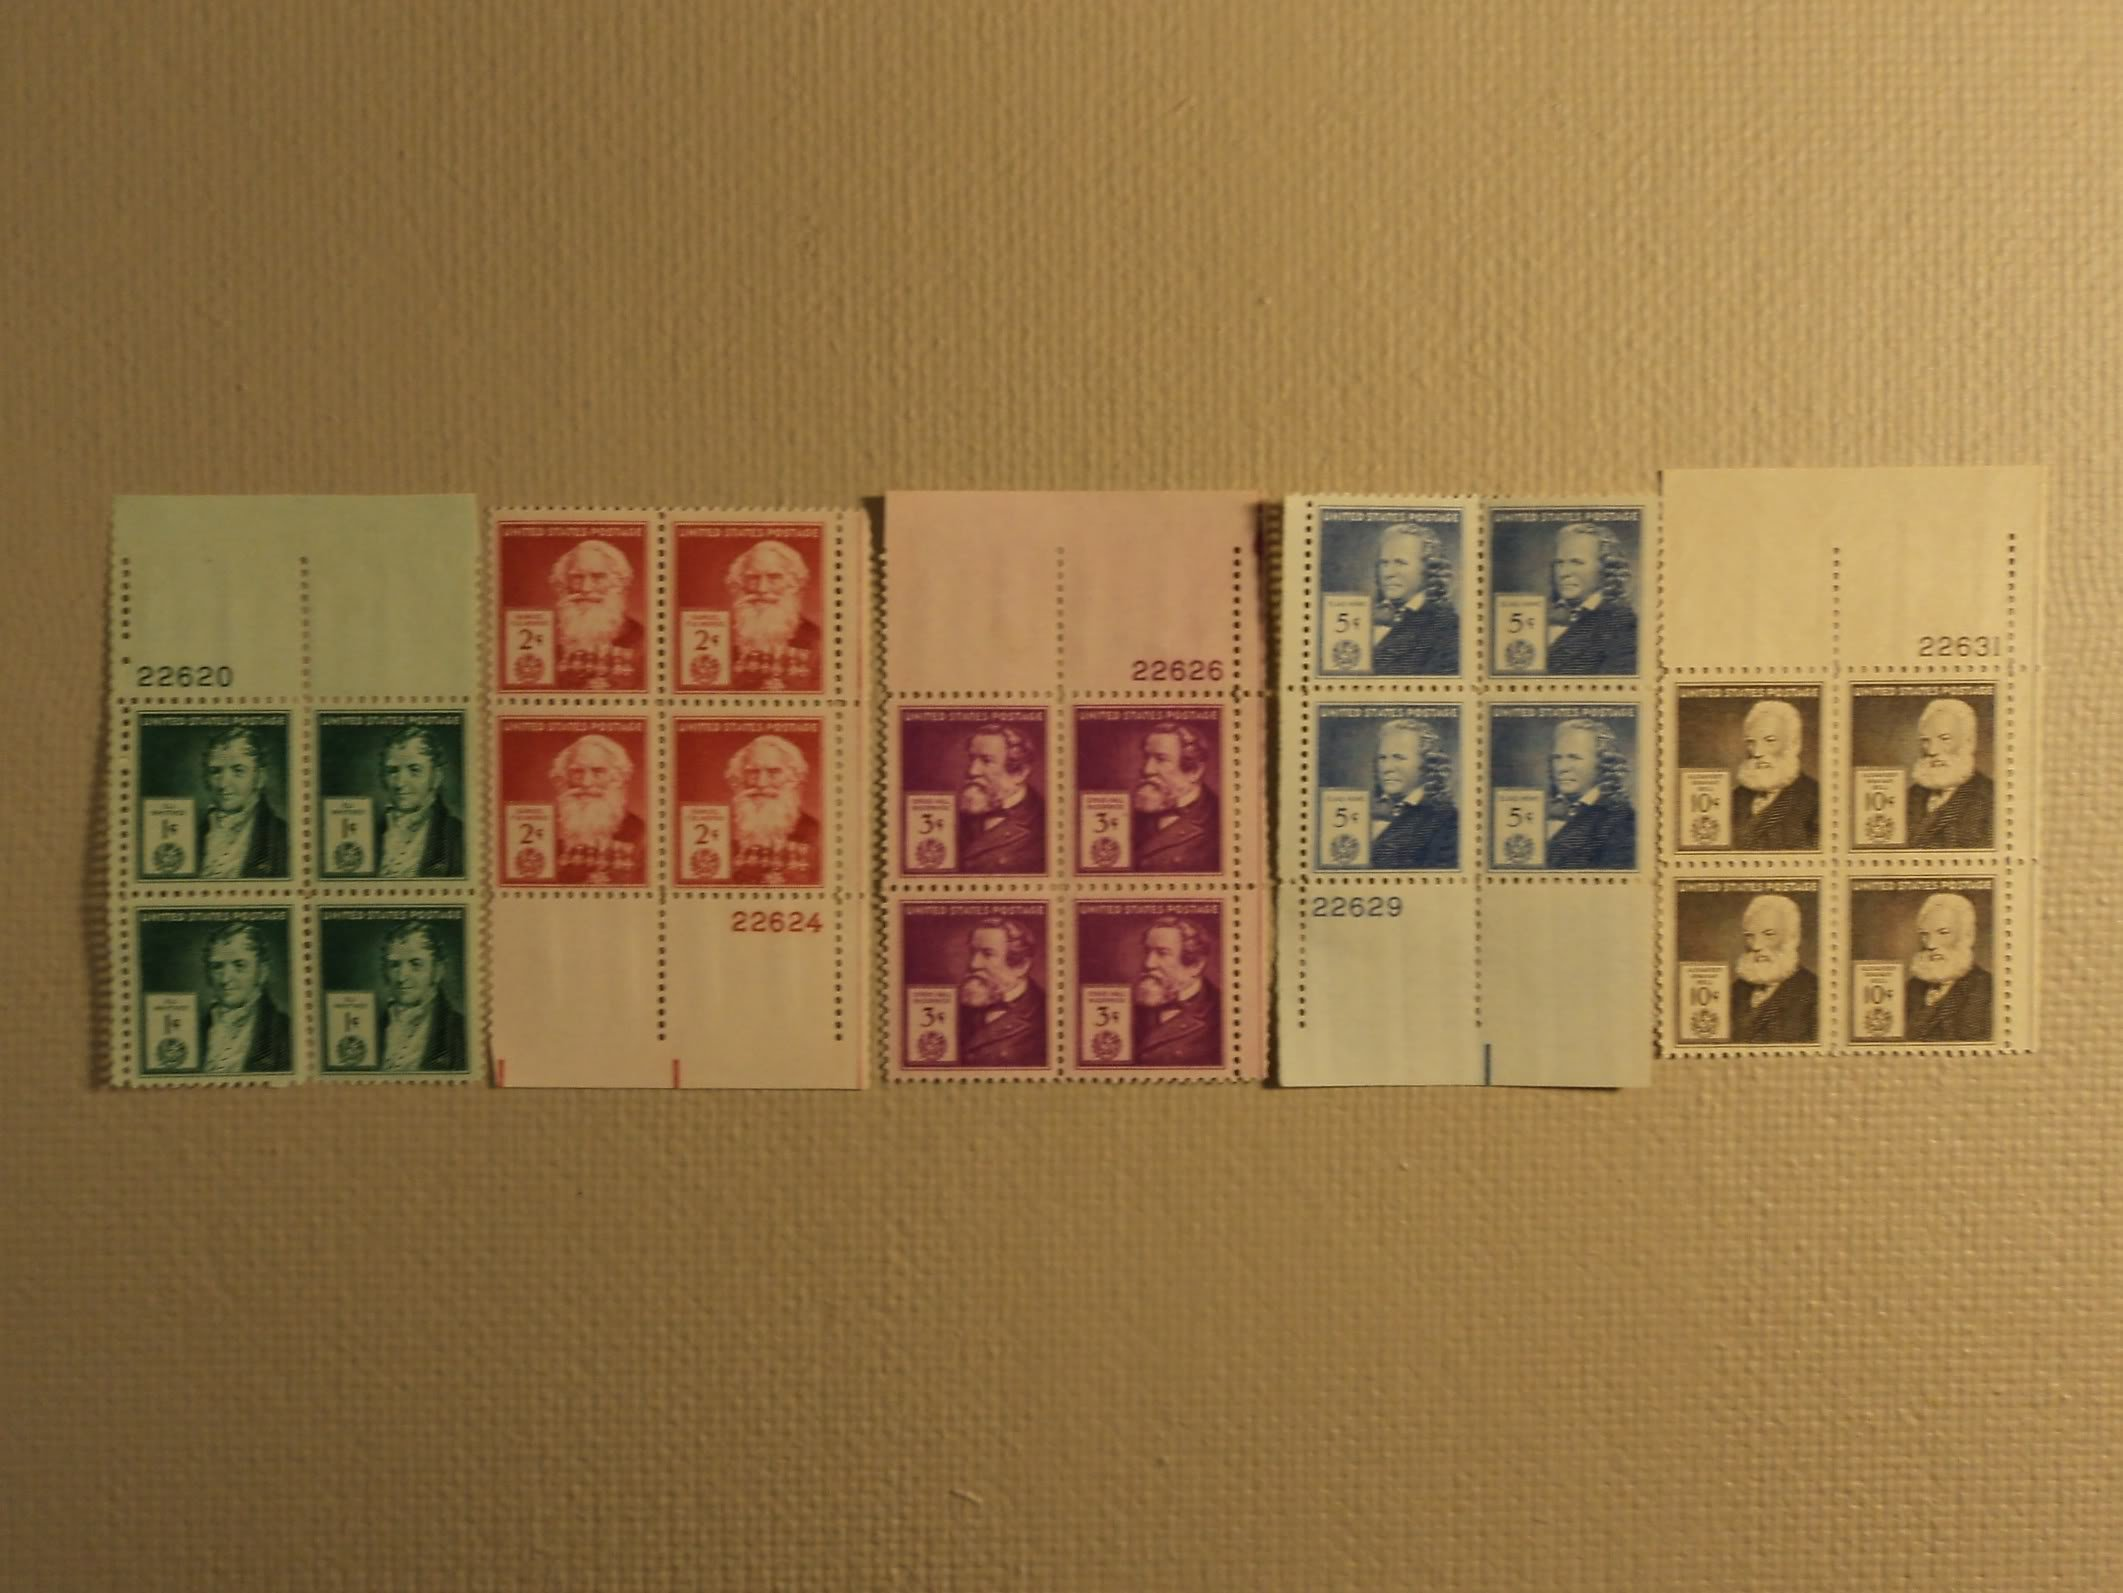 USPS Scott 889-93 1940 American Inventors Lot Of 5 Plate Block 20 Stamps Mint NH